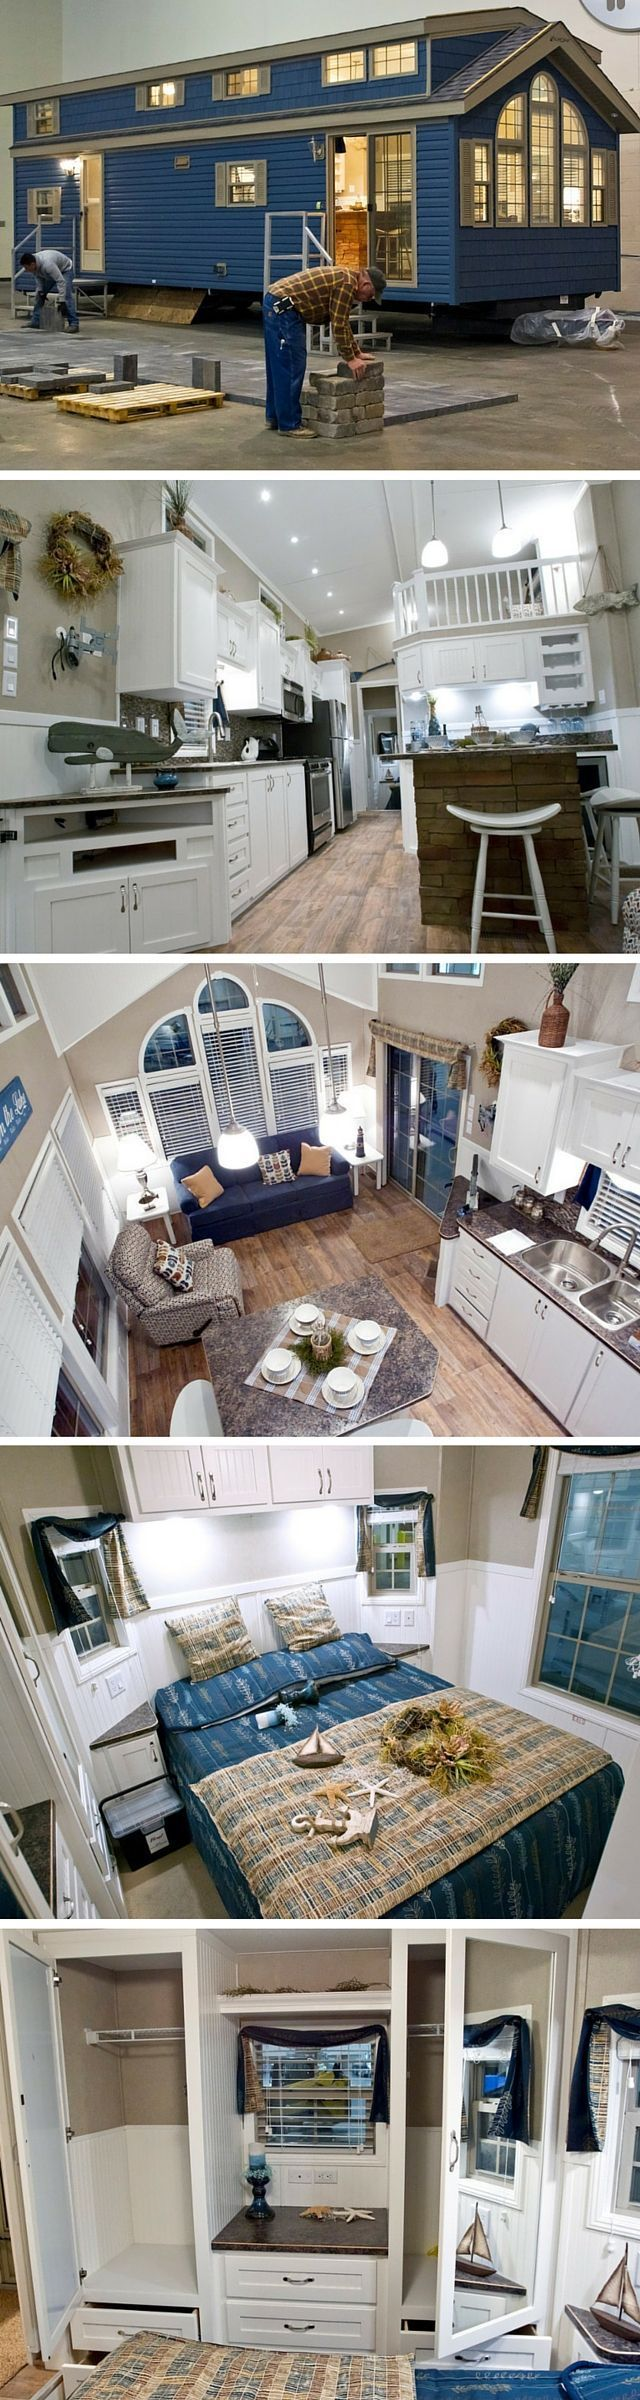 13759 best Rustic Home Decor images on Pinterest | Home ideas ... on